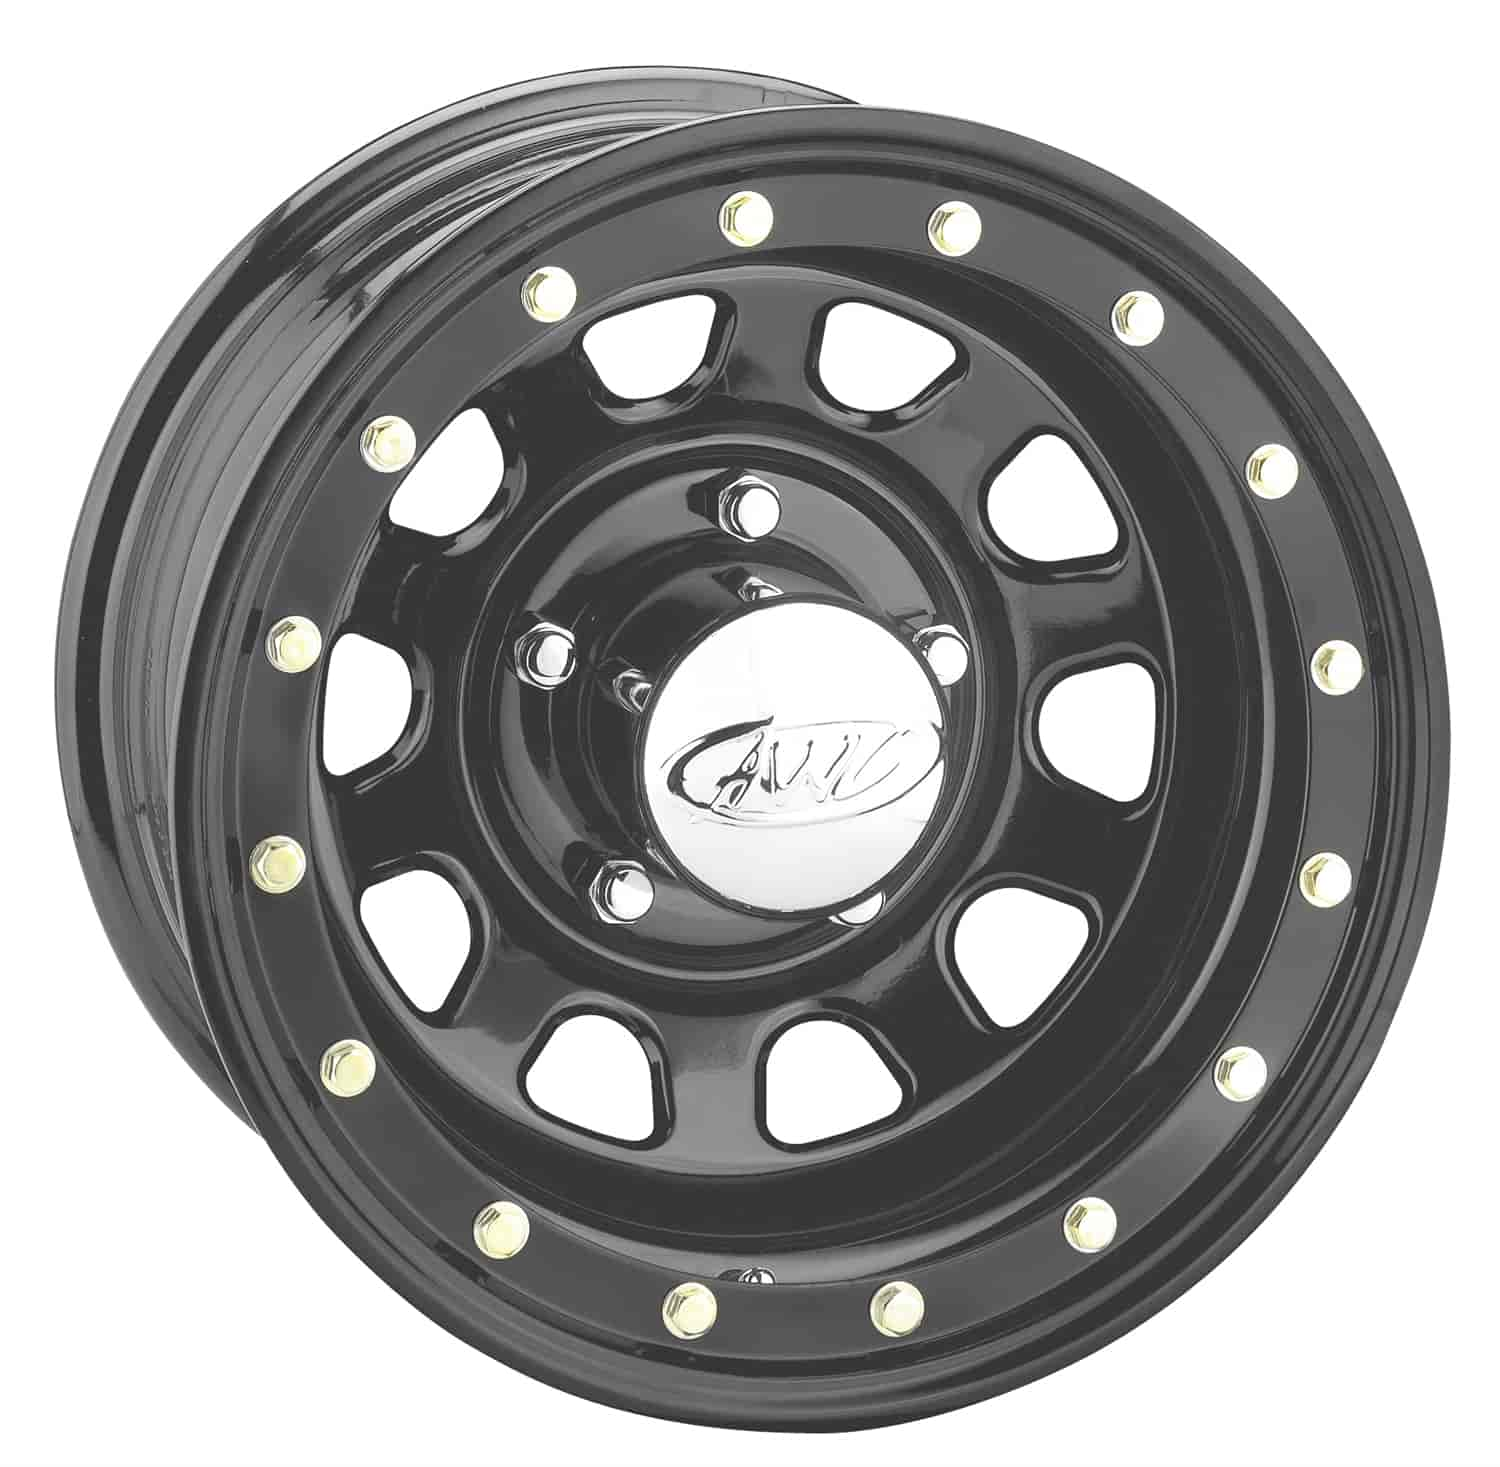 Raceline Wheels 54M-58050